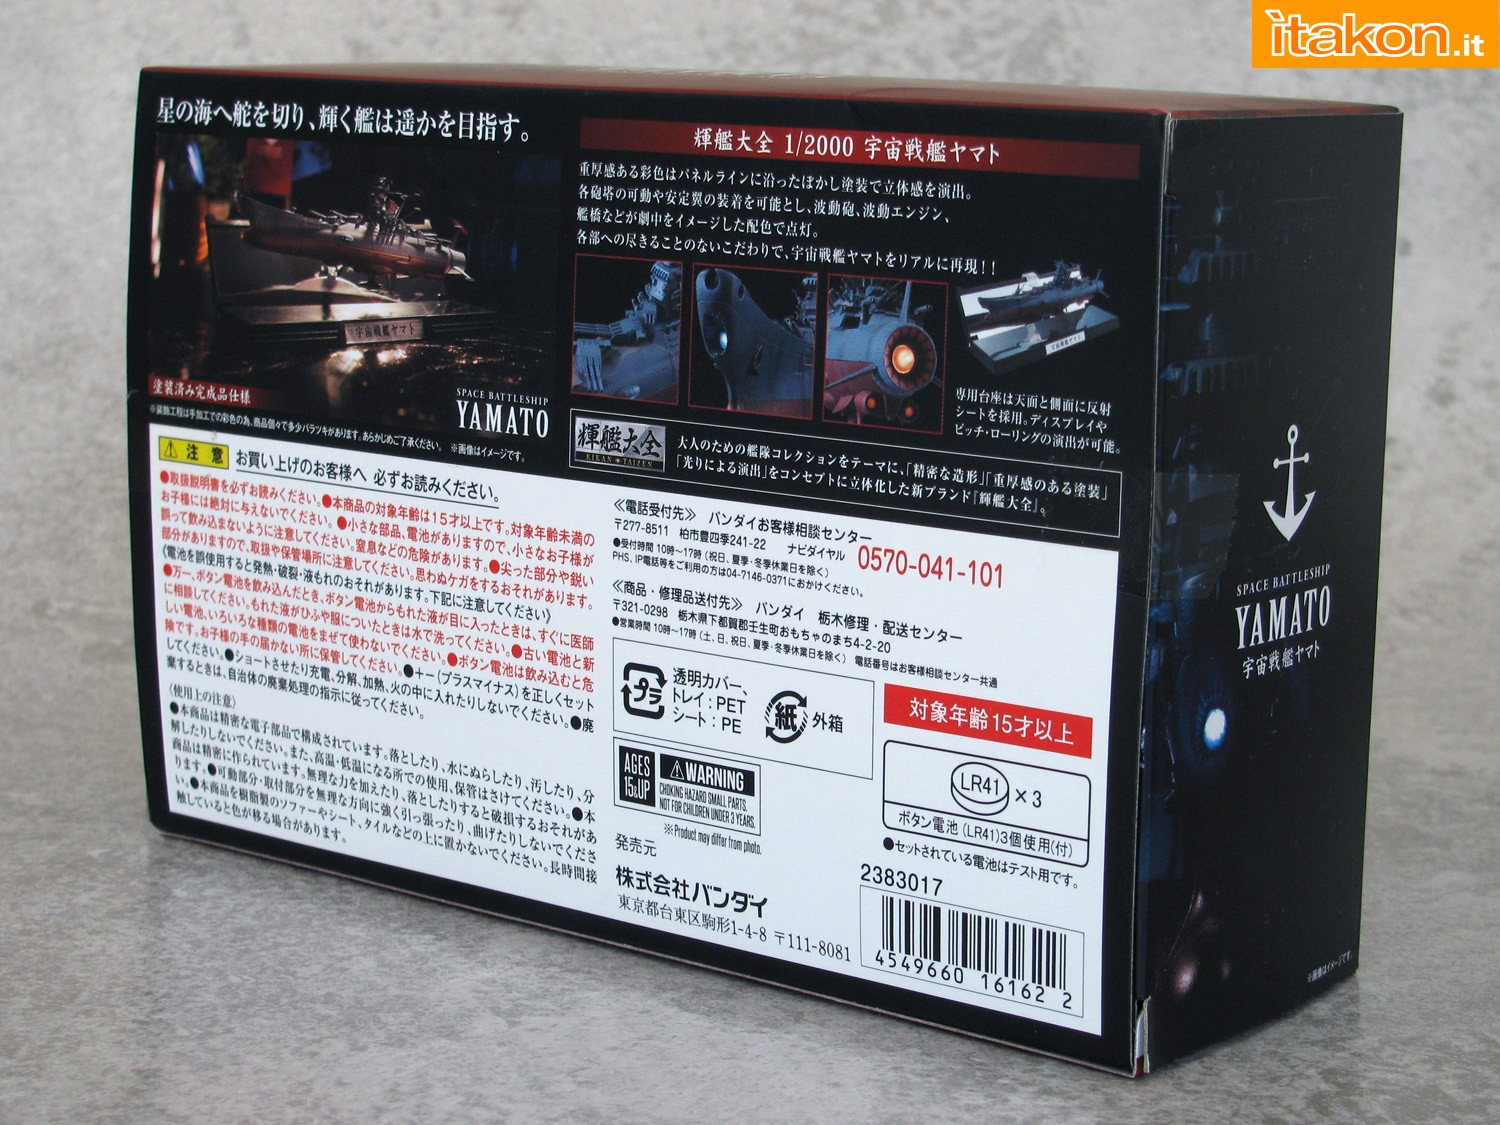 Link a 003 Space Battleship Yamato Bandai recensione